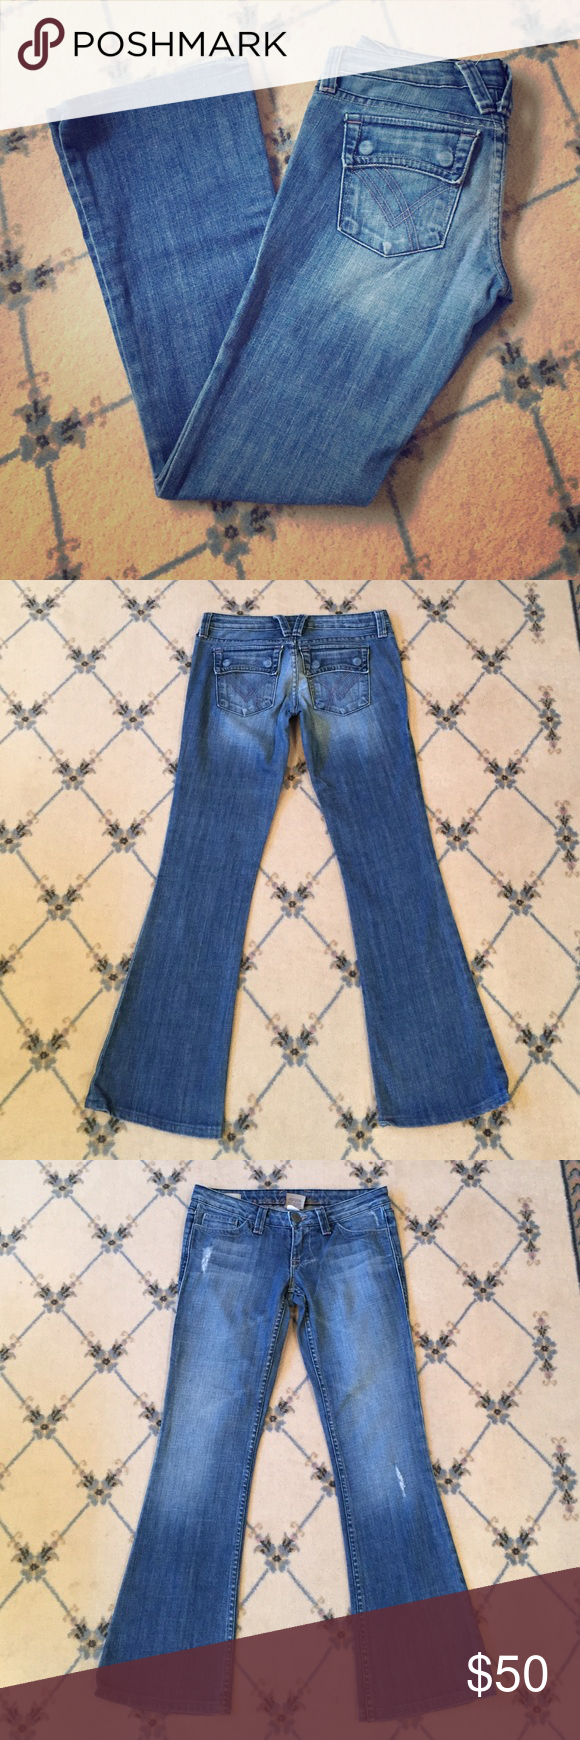 """William Rast Belle Flare Jeans, Size 25 Excellent condition; Belle Flare cut; inseam approx. 29.5""""; waist approx. 32""""; size 25 William Rast Jeans Flare & Wide Leg"""